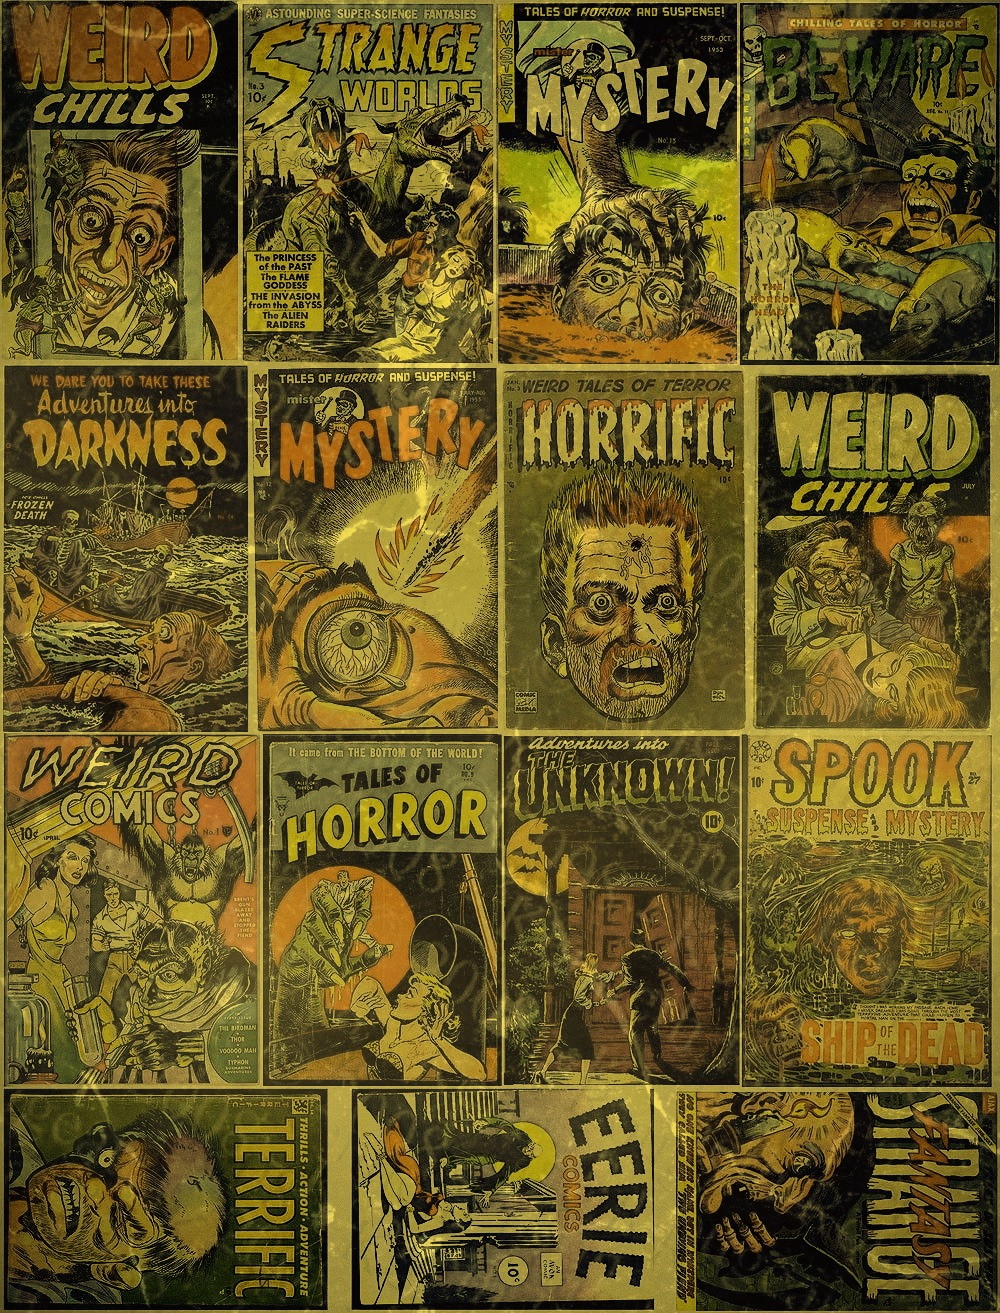 PART 2 - RARE HORROR COMICS by ''Mc Chai'' Mehmet Şevki Akçay